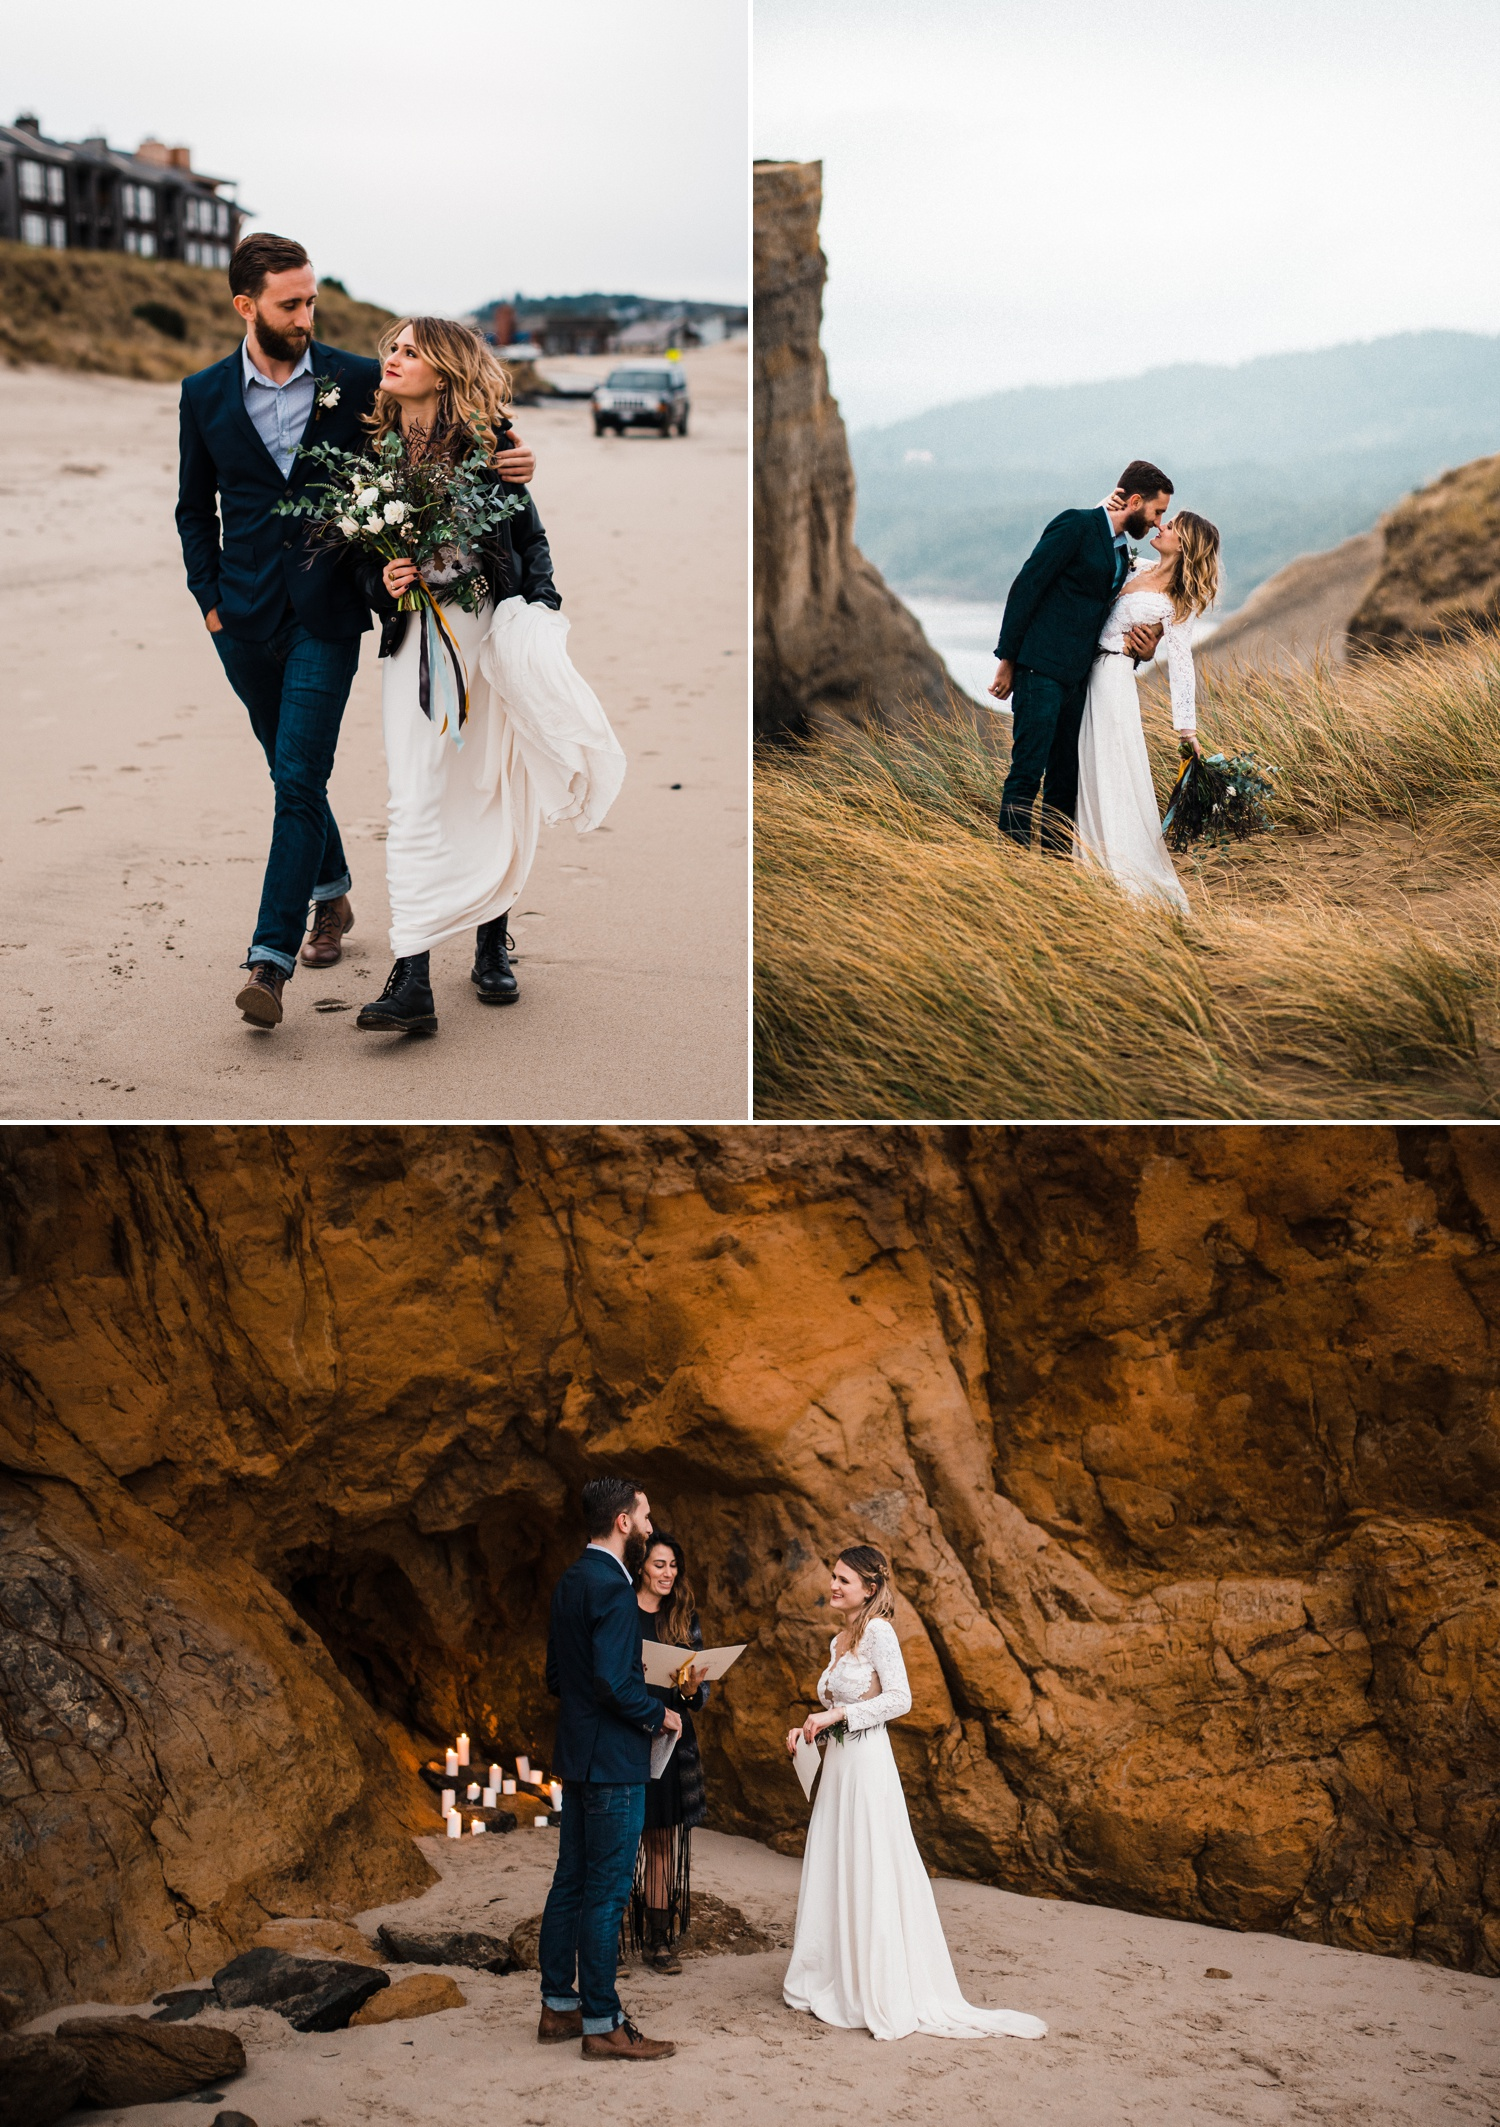 Oregon_Coast_Elopement_Wedding_The_Foxes_Photography_079-2-1.jpg